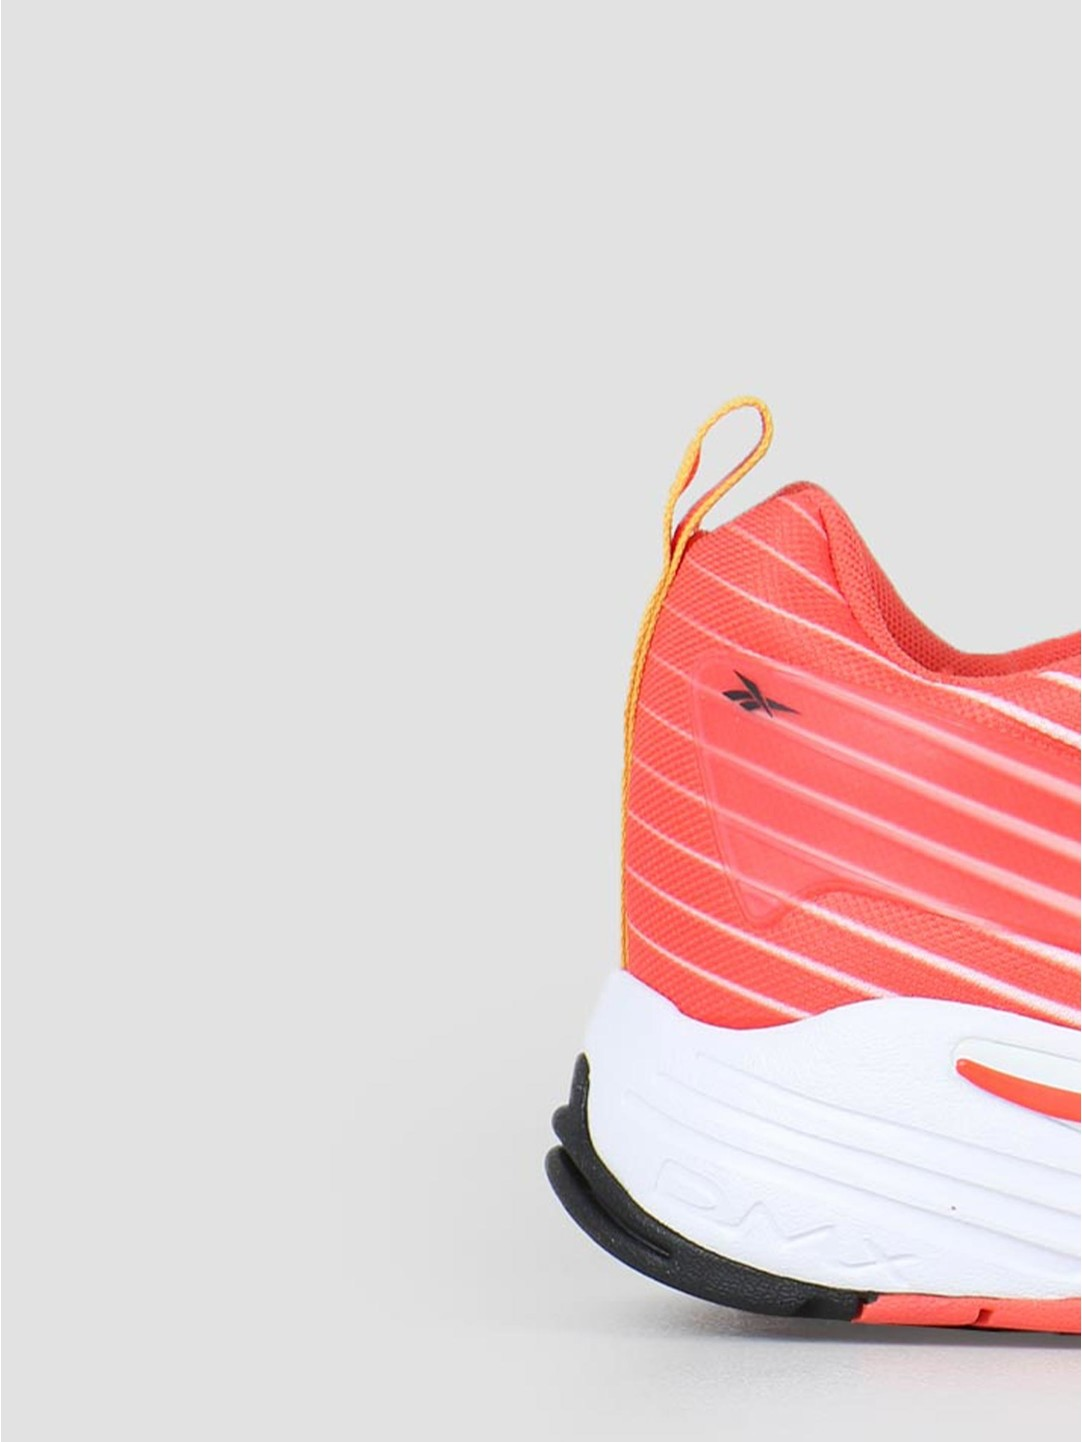 Reebok Reebok Dmx Thrill Vivid Orange White Fiegol EF7750